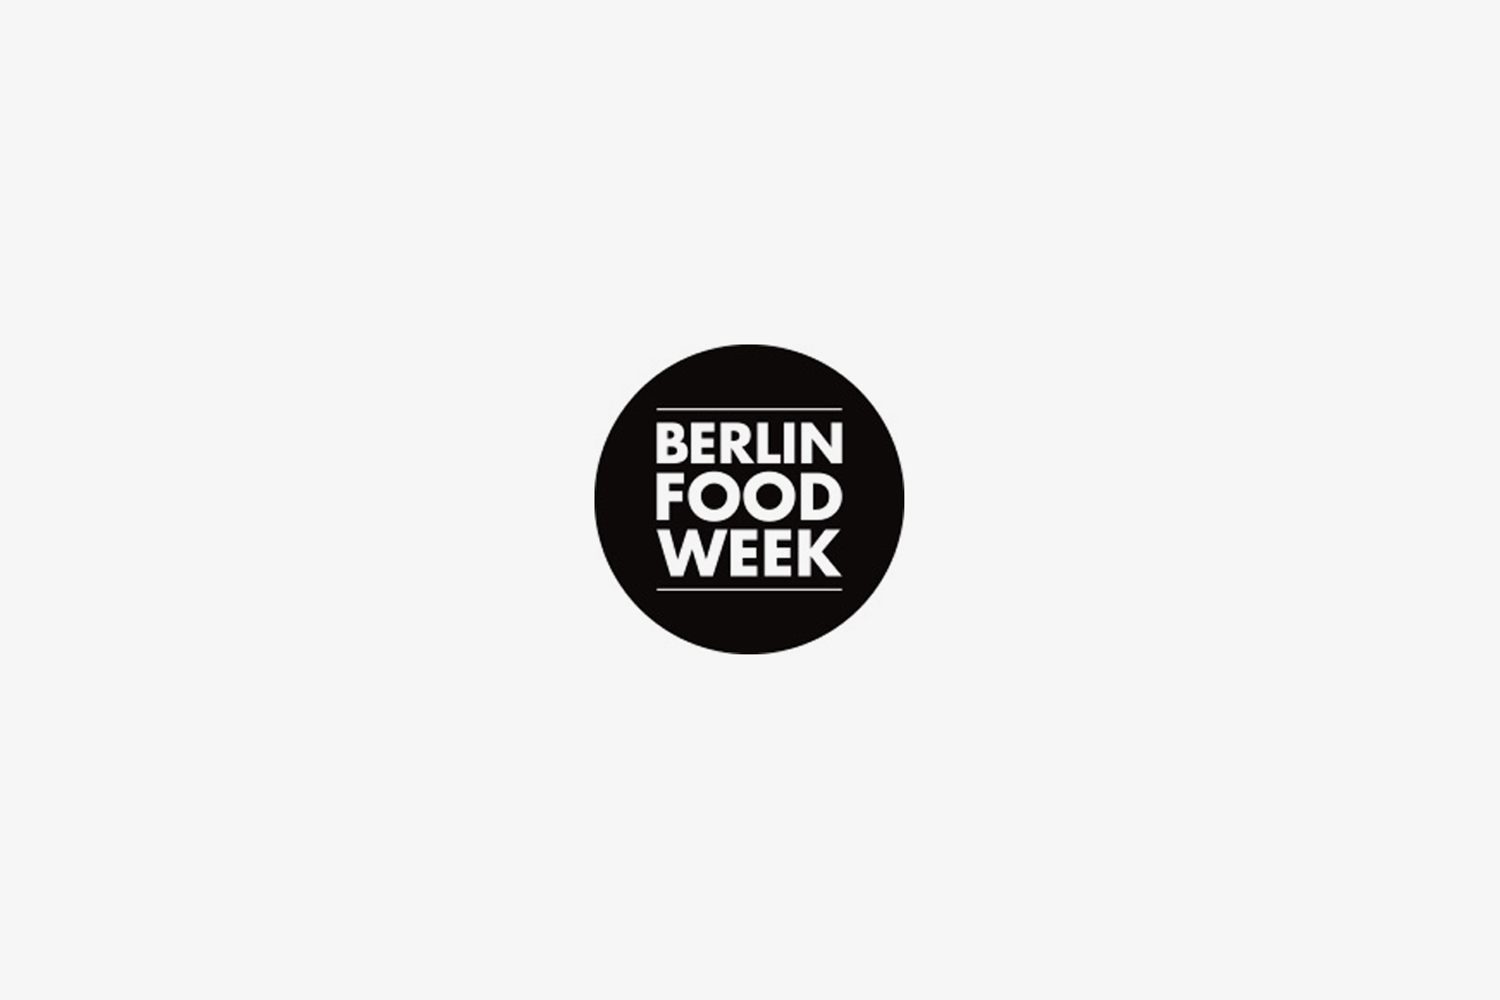 BERLIN FOOD WEEK 15